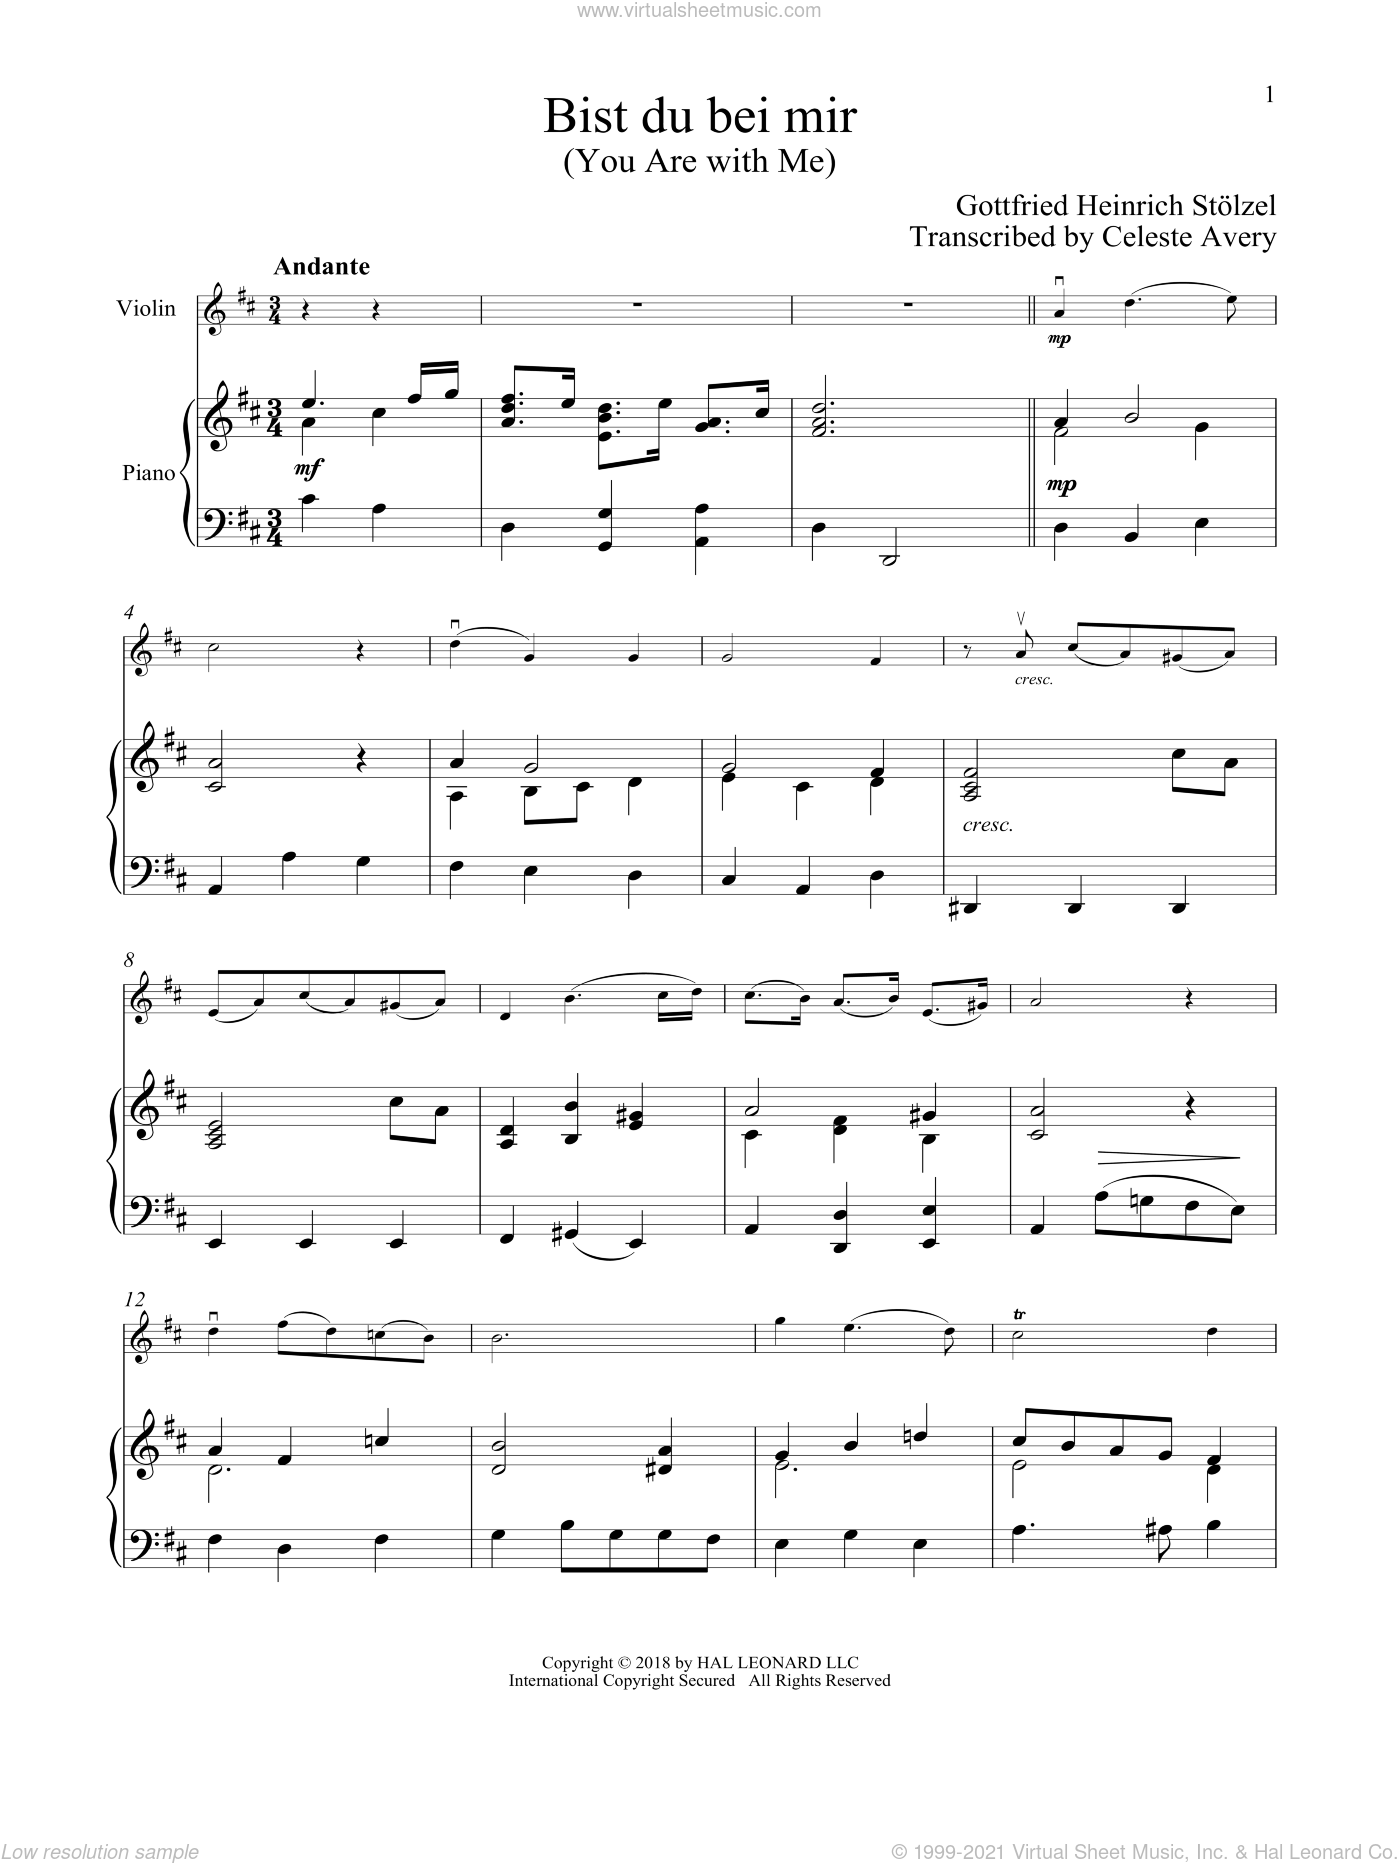 Bist du bei mir (You Are With Me) sheet music for violin and piano by Johann Sebastian Bach, classical wedding score, intermediate skill level